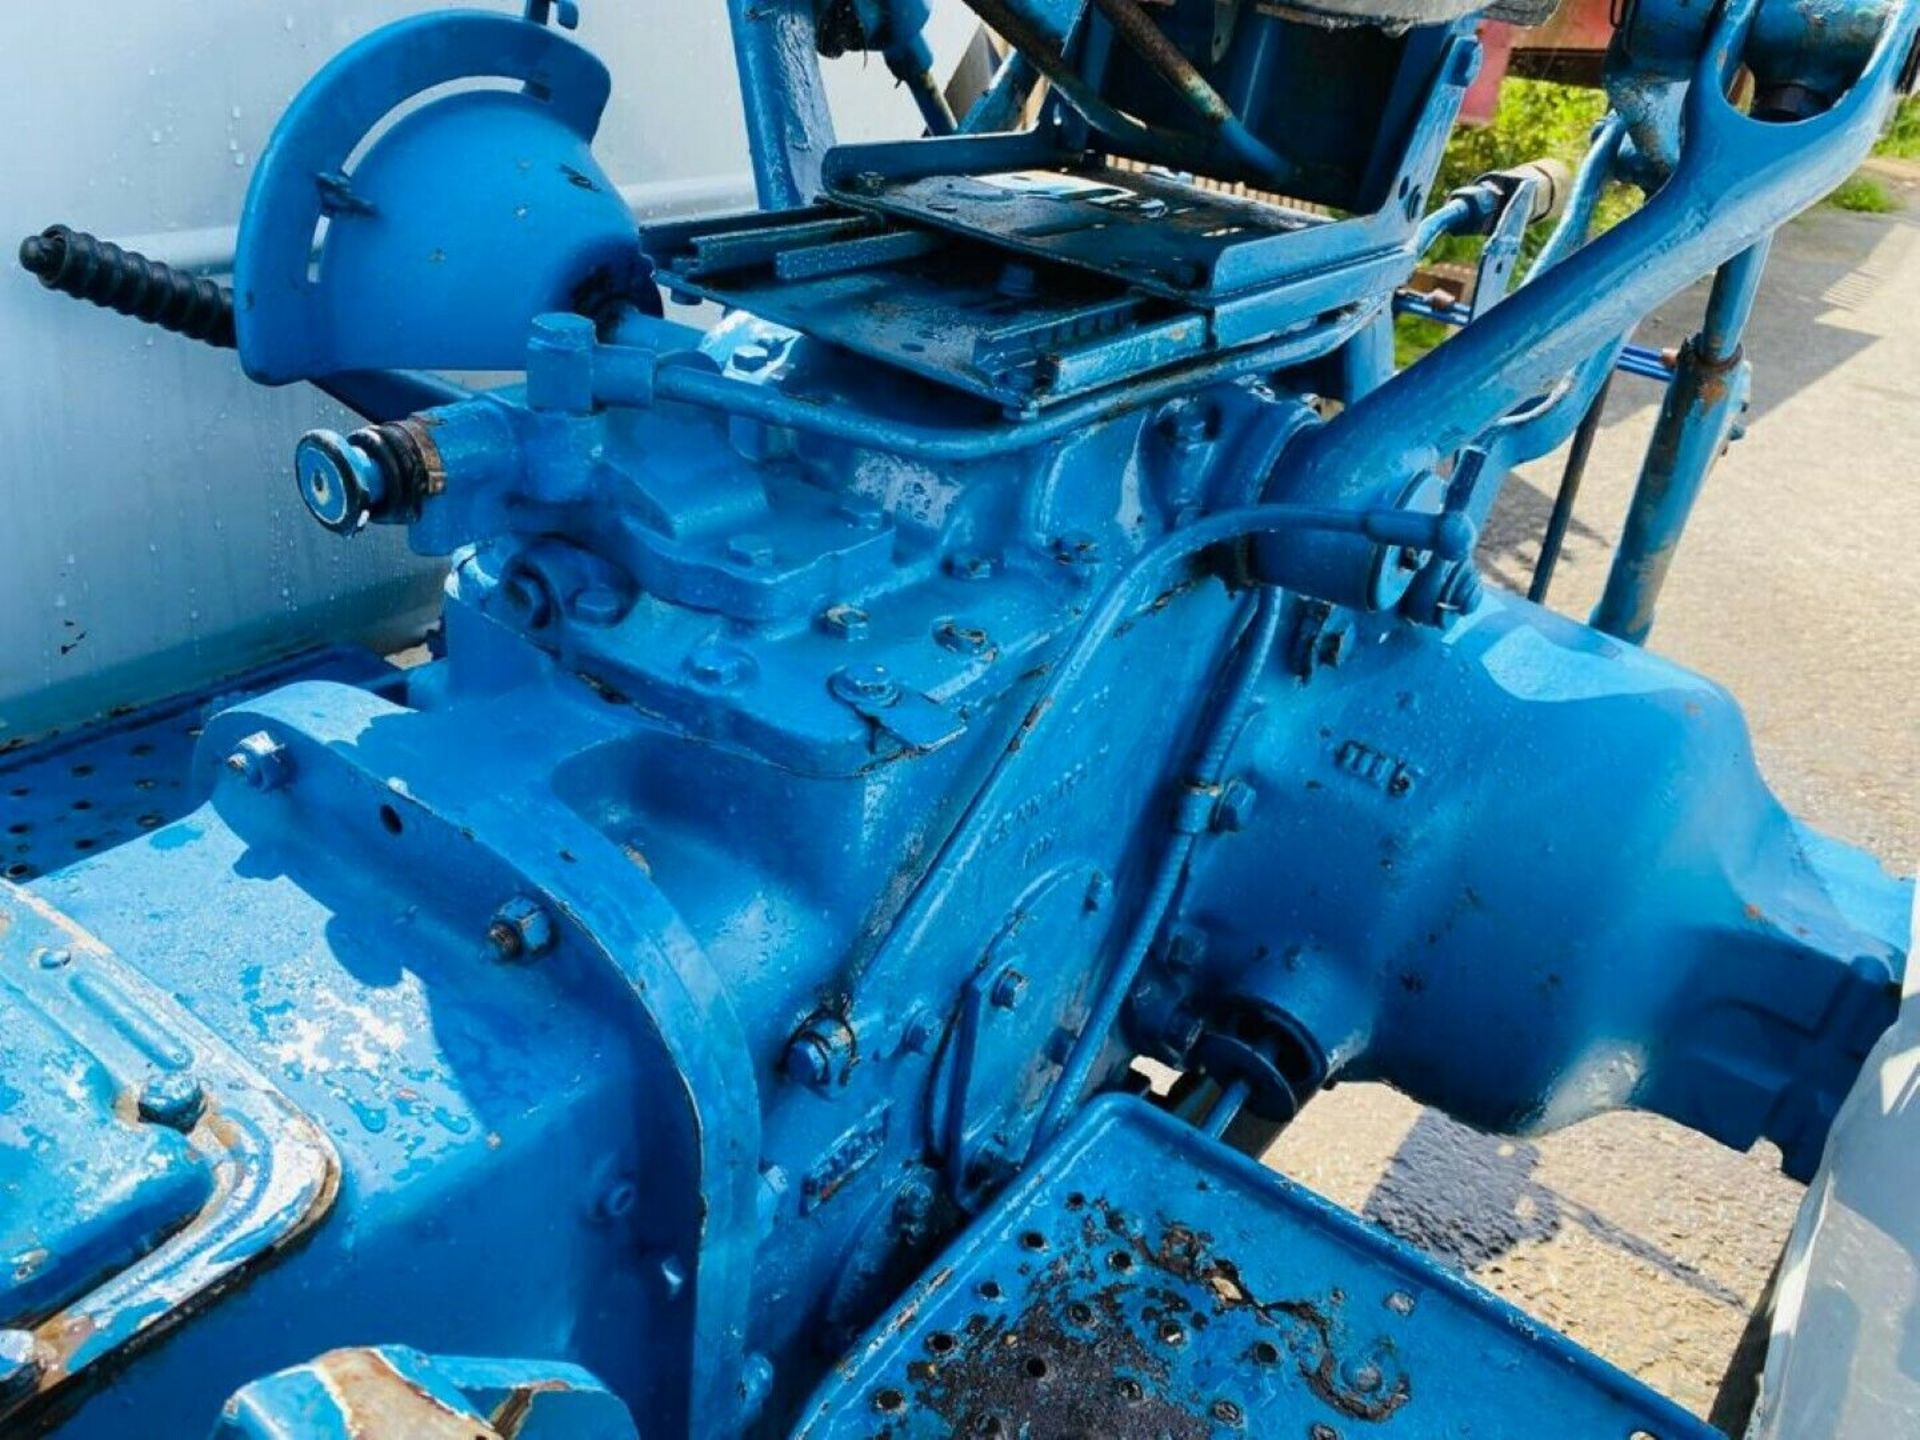 Ford 4000 Tractor 1969 - Image 12 of 12